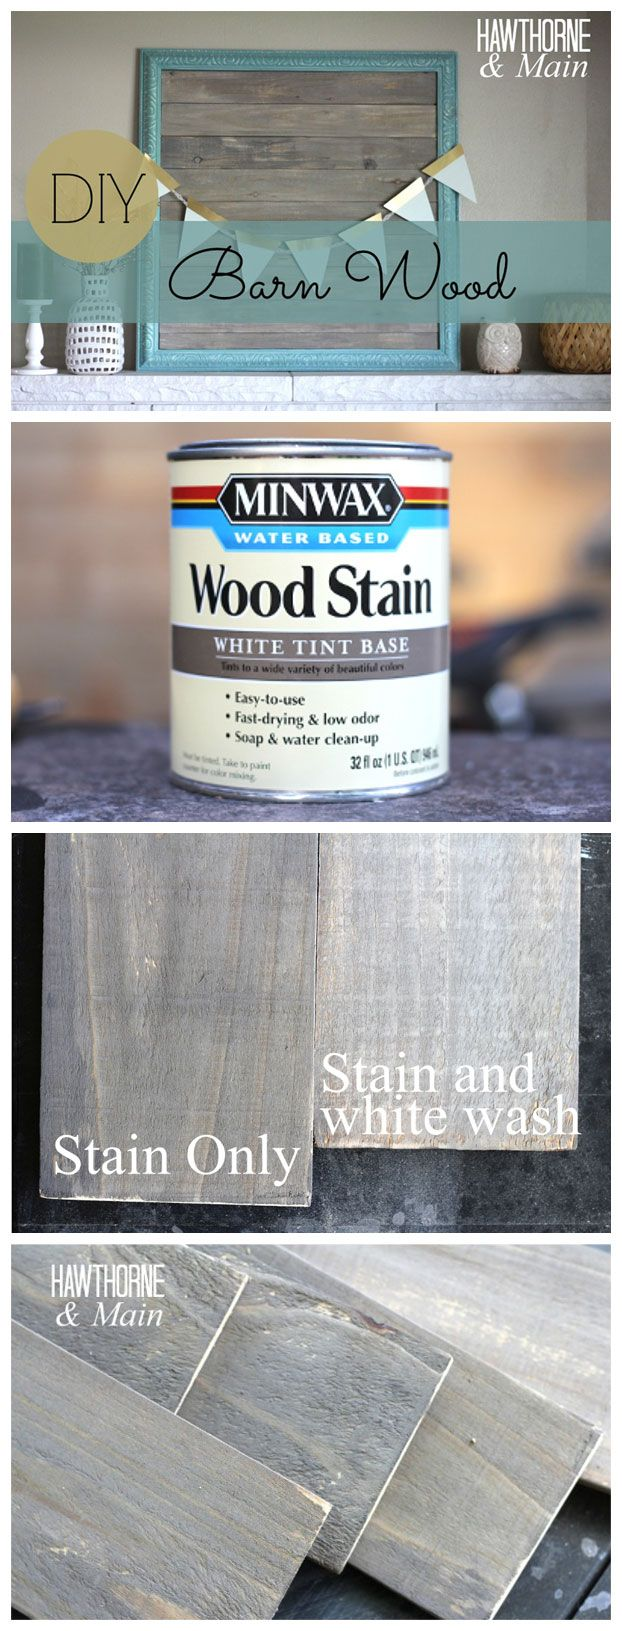 Diy Barn Wood She Stained A Piece Of S Board With Minwax White Tint Base Stain In Slate And Realized It Was Bit Too Dark For Her Liking So